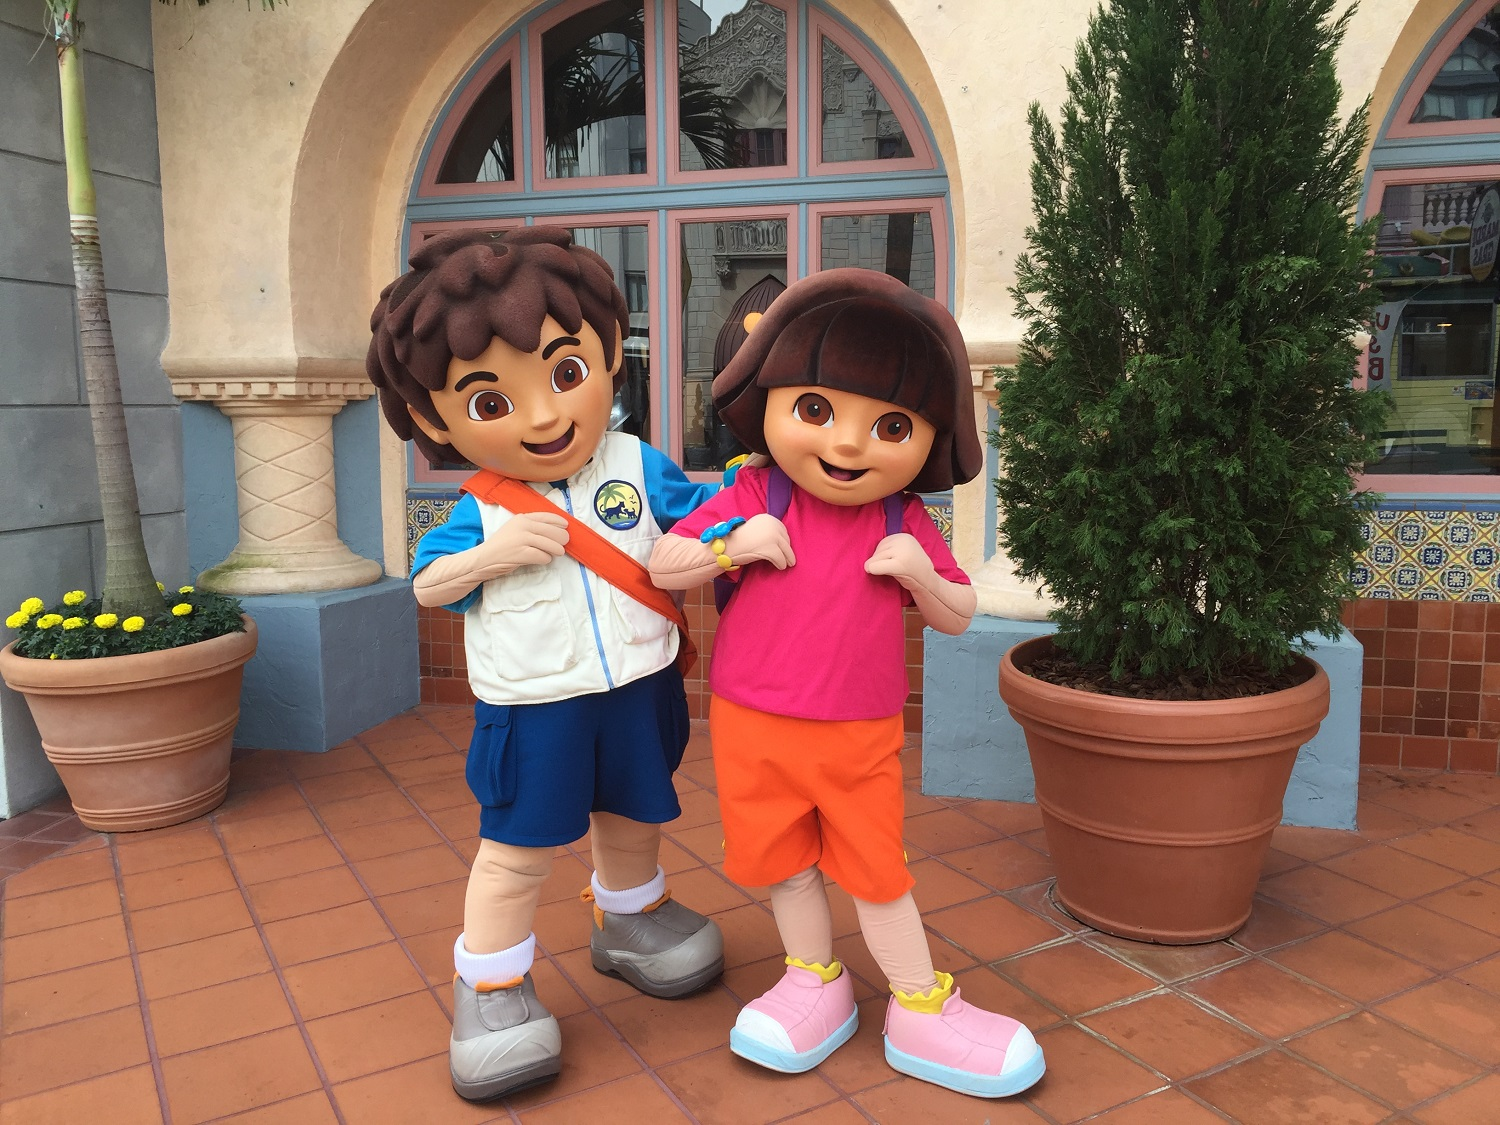 Dora and Diego posing during a meet and greet in Universal Studios Florida.